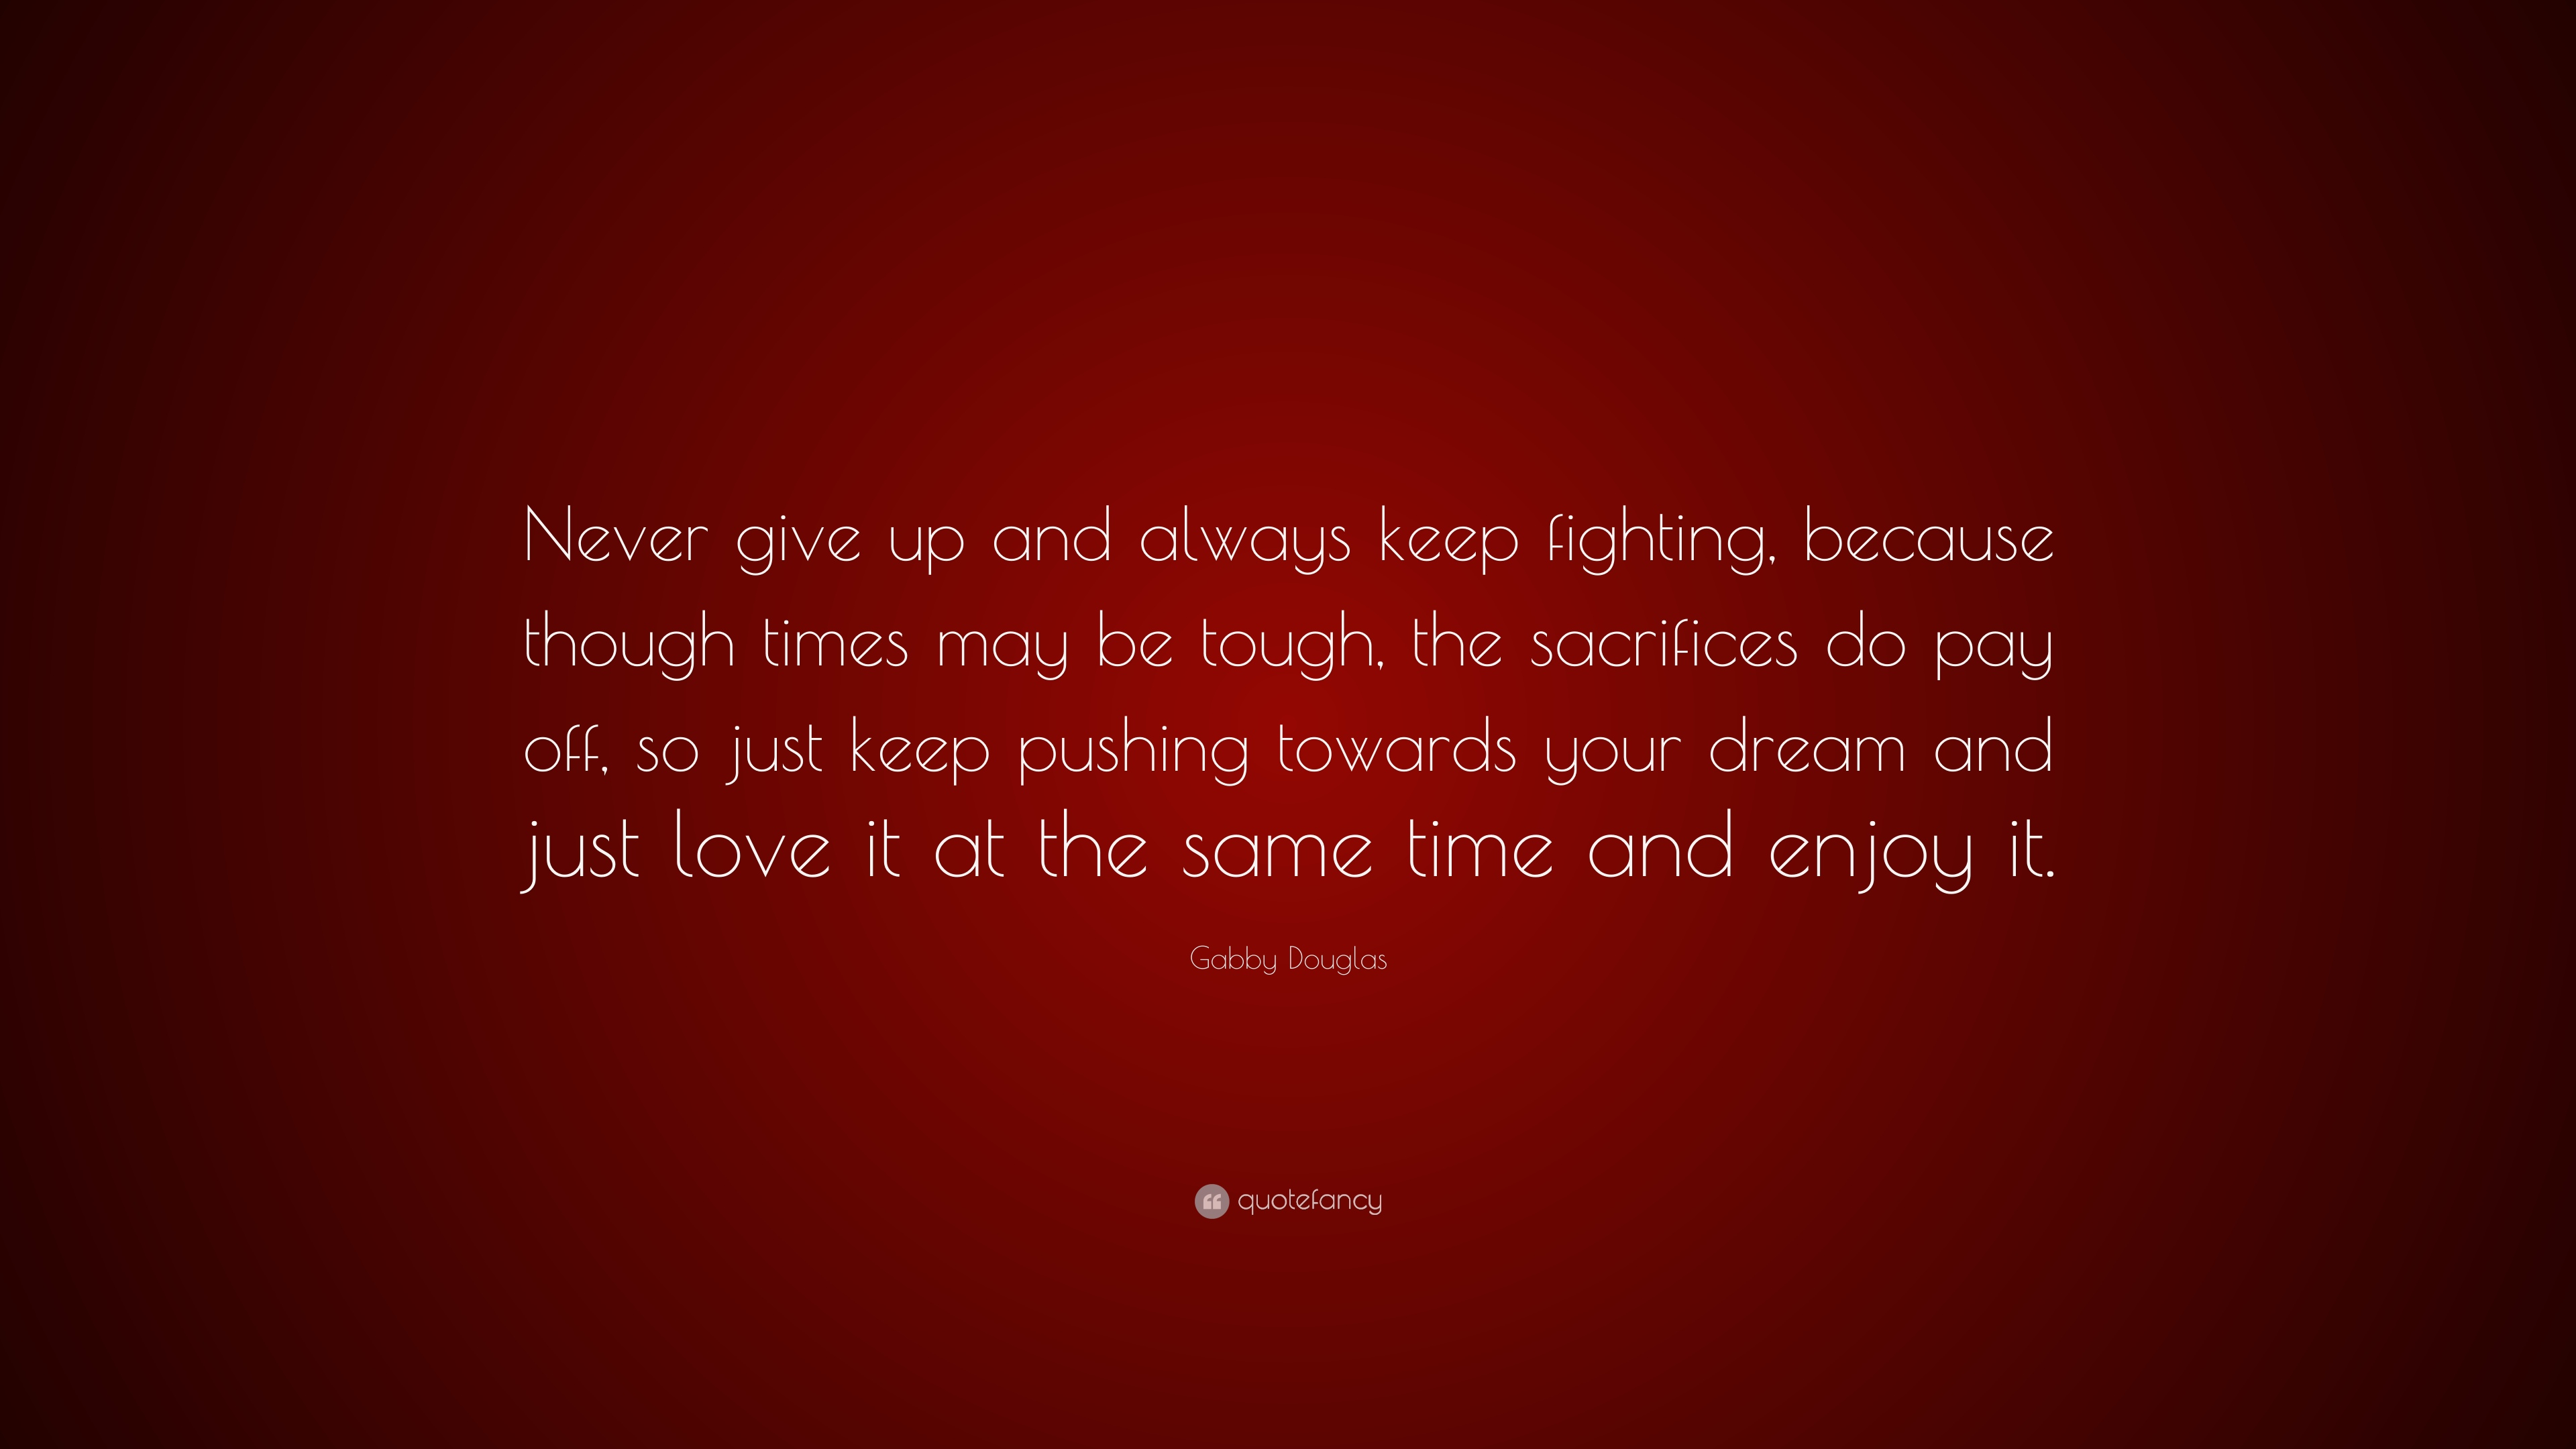 Gabby Douglas Quote Never Give Up And Always Keep Fighting Because Though Times